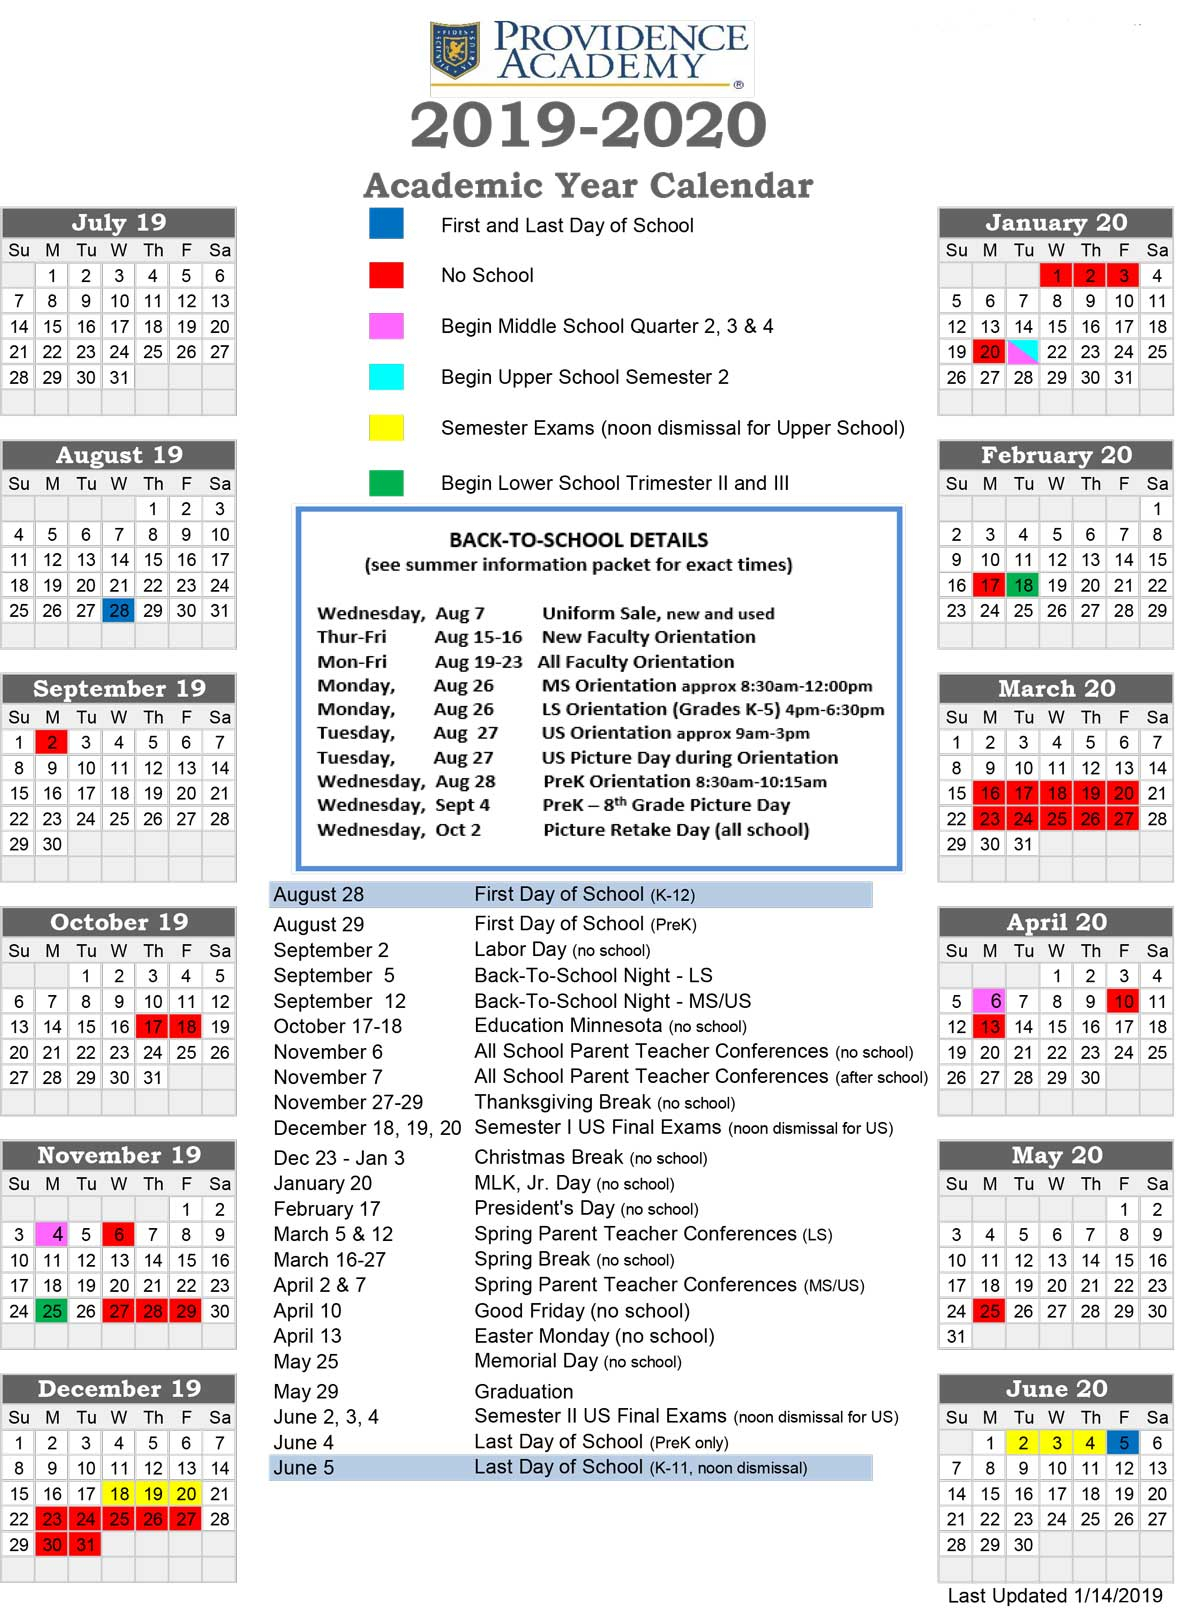 Academic Calendar - Providence Academy Intended For U Of M Twin Cities 2020 2021 Calendar